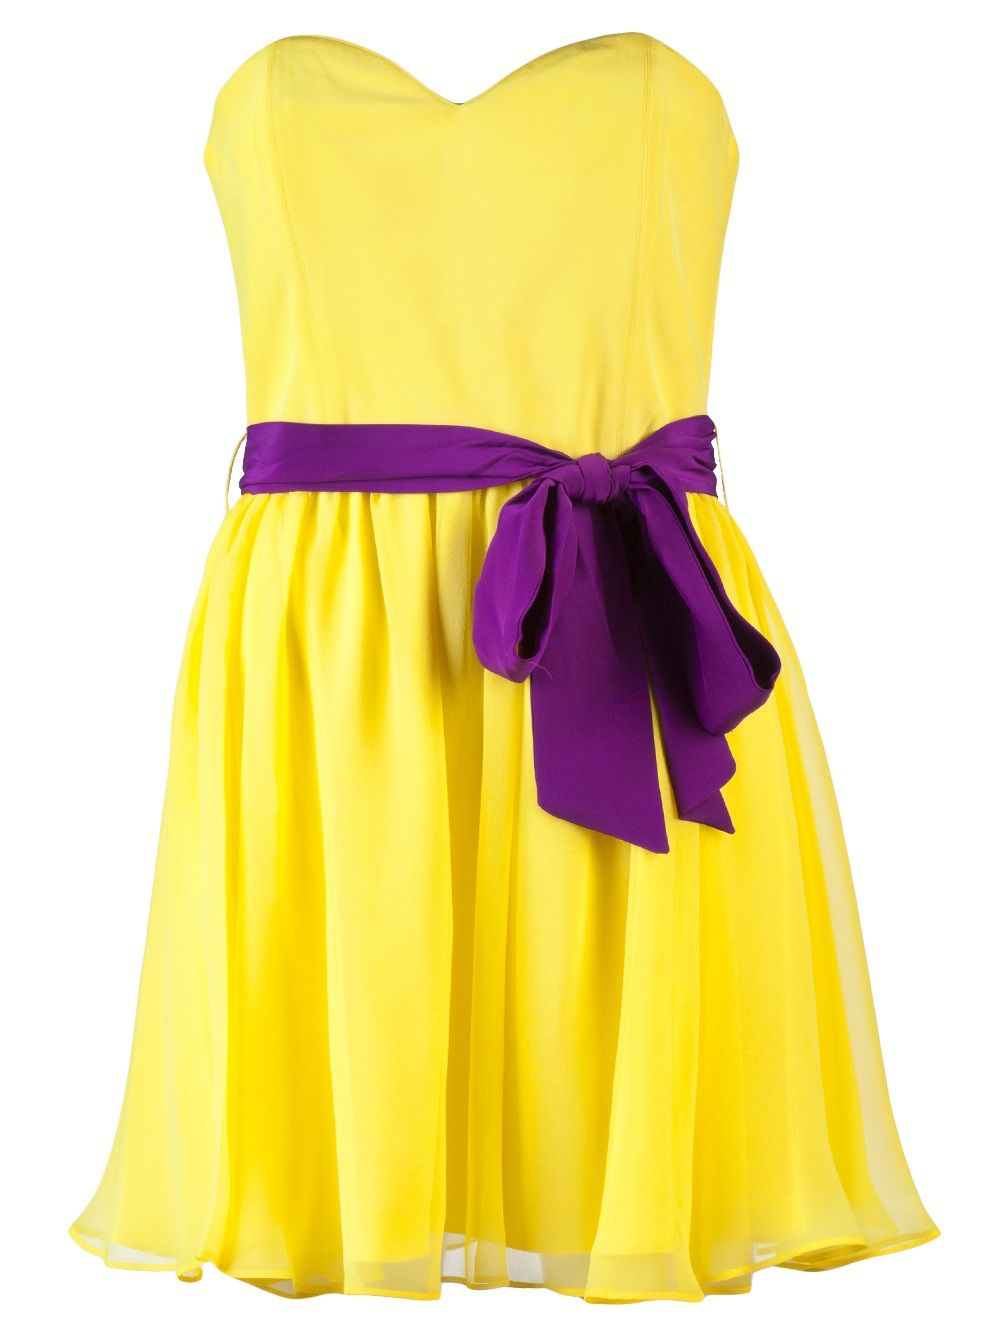 Pin By Agabelle On My Style Yellow Strapless Dress Dresses Clothes Design [ 1334 x 1000 Pixel ]